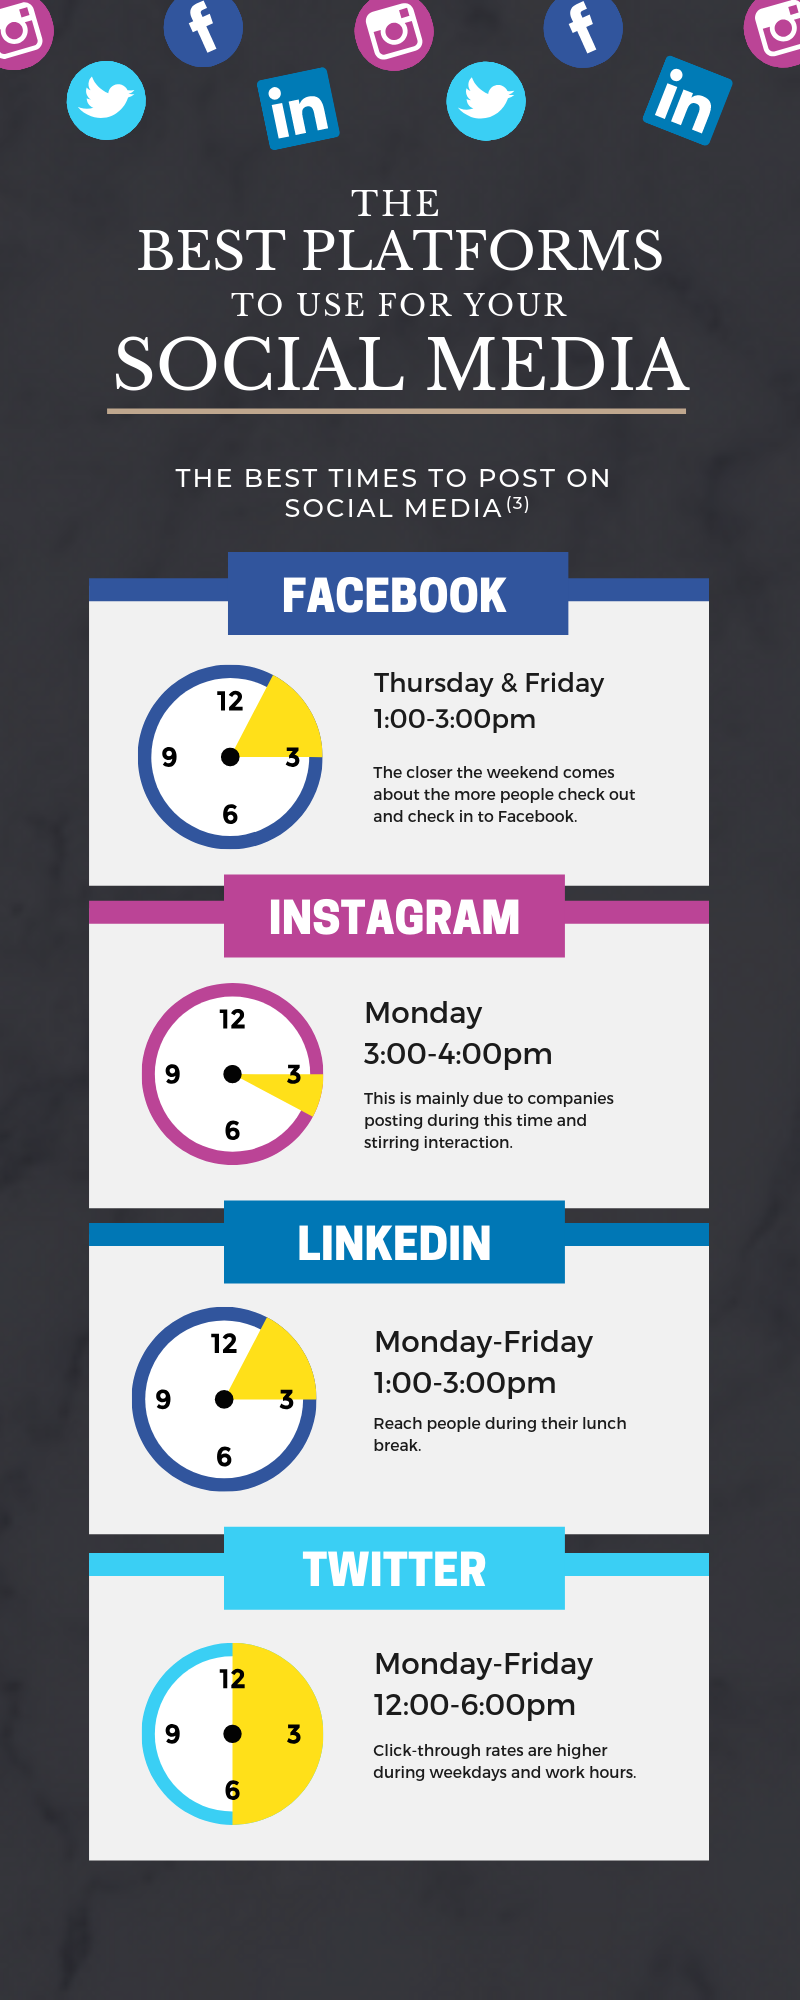 ContentSmith INfographic which social platform is best for you